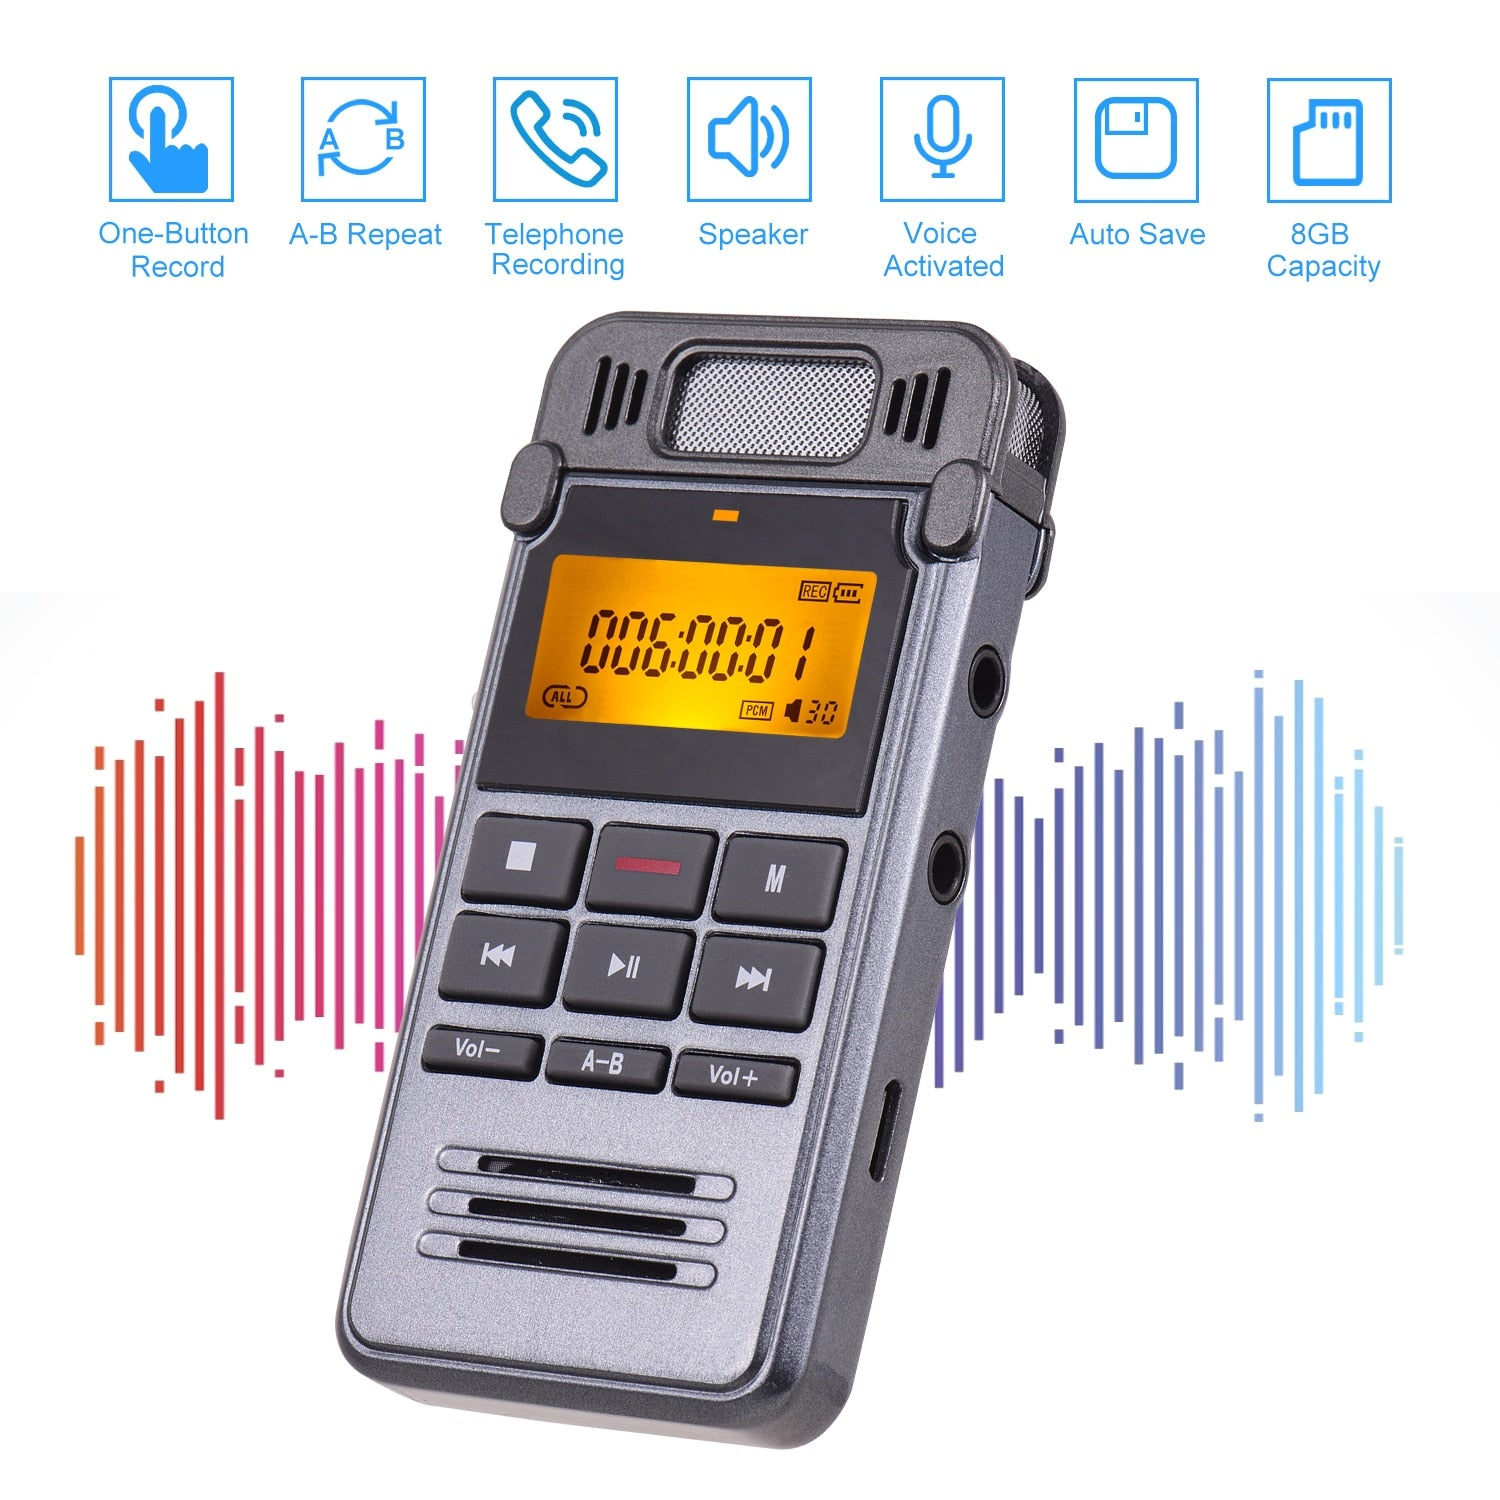 Digital Voice Sound Recorder MP3 Music Player One-Button Recording Voice-Activated Support Recording Monitor Recording 8GB